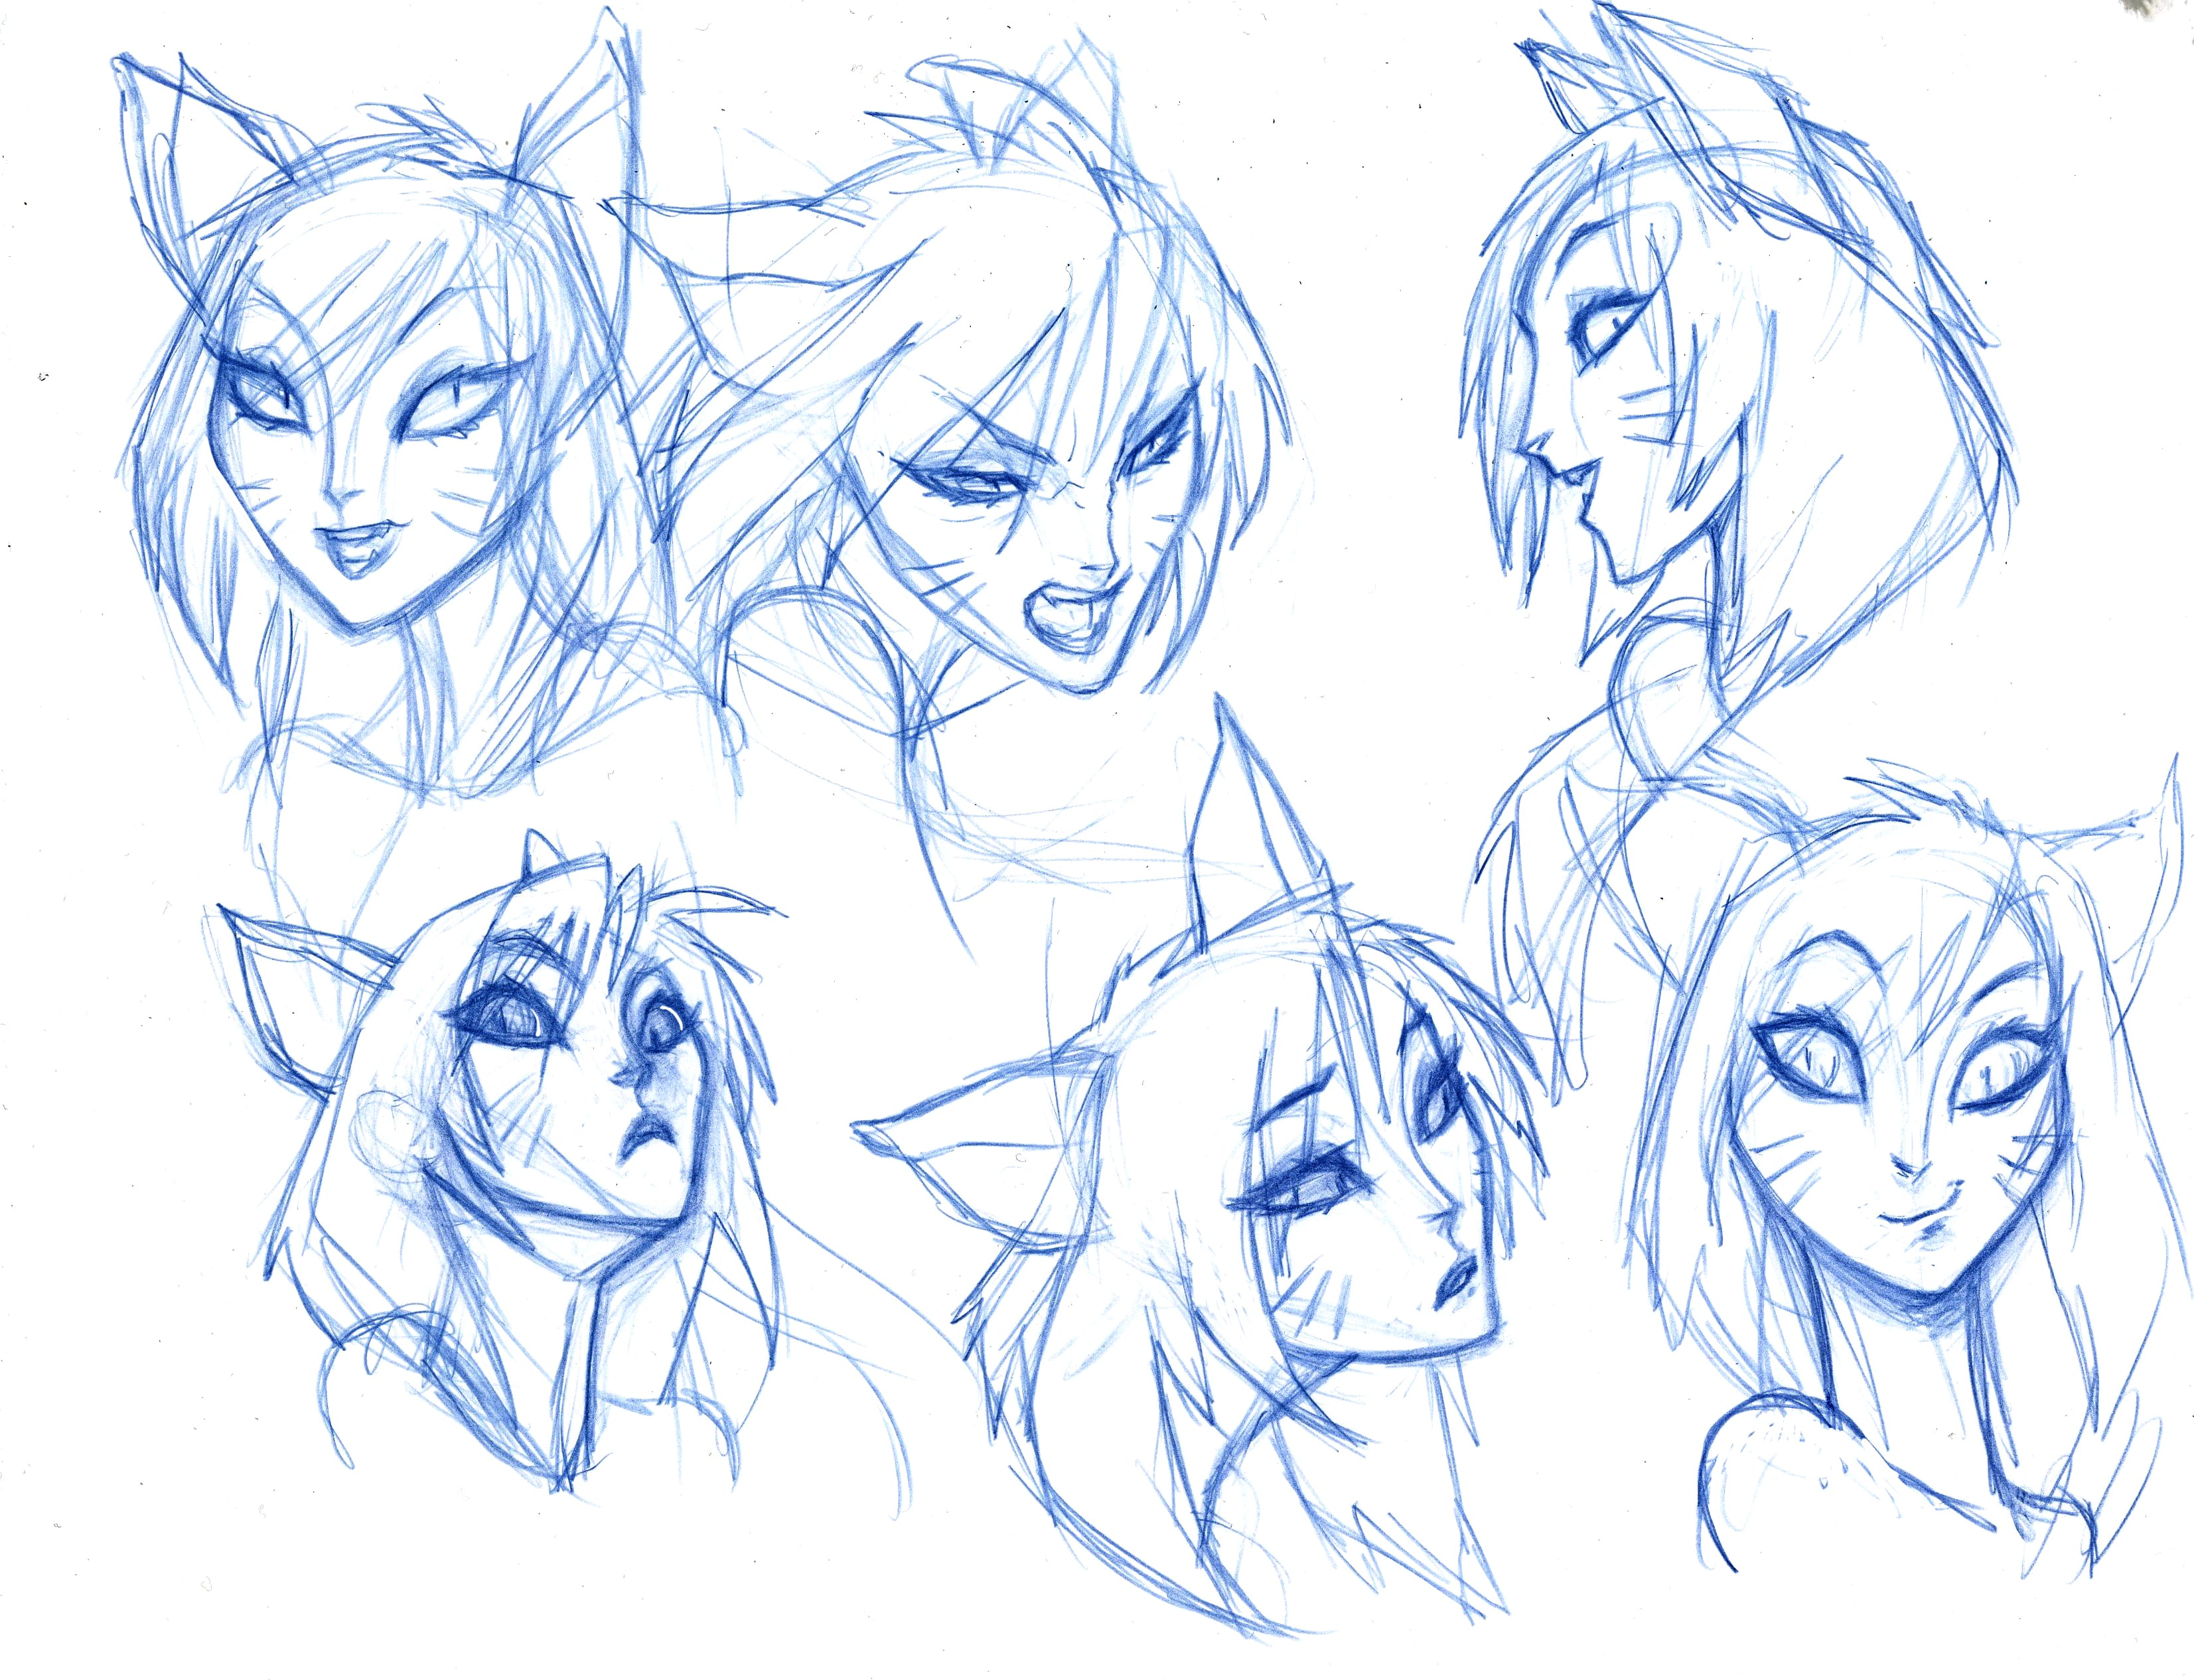 Early Facial Expression Exploration for Ahri